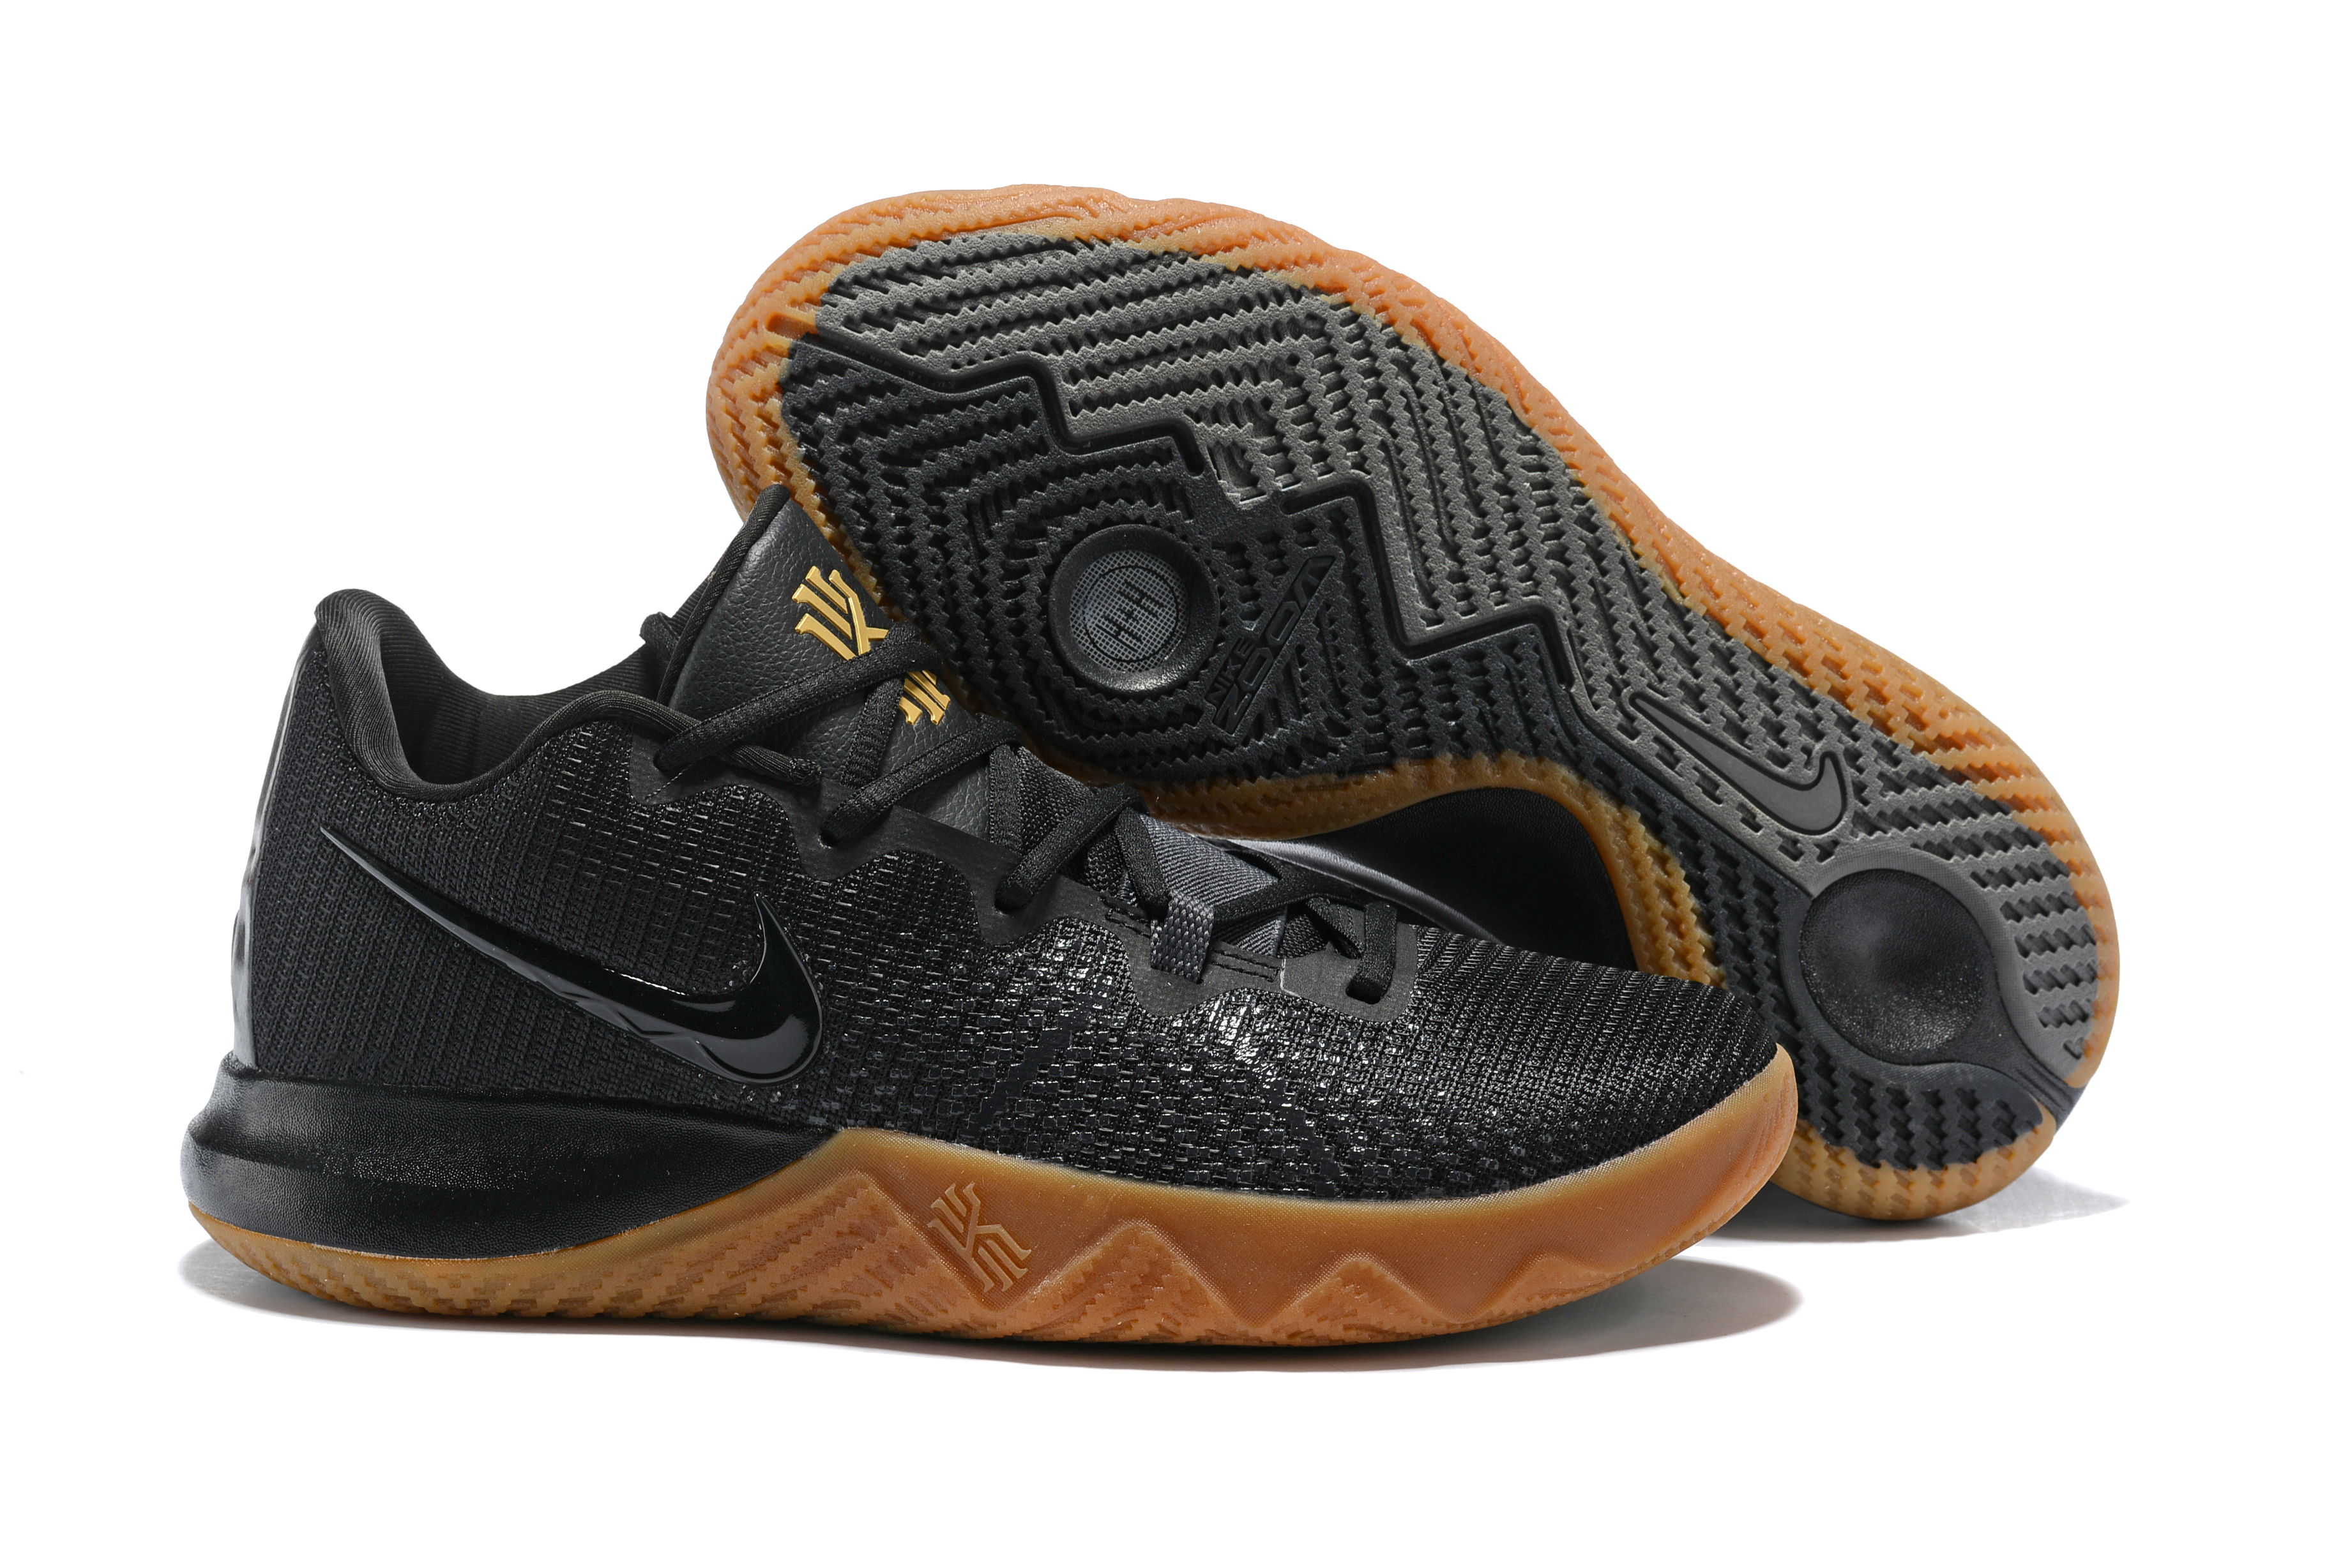 Nike Kyrie Flytrap Black Brown Sole Shoes